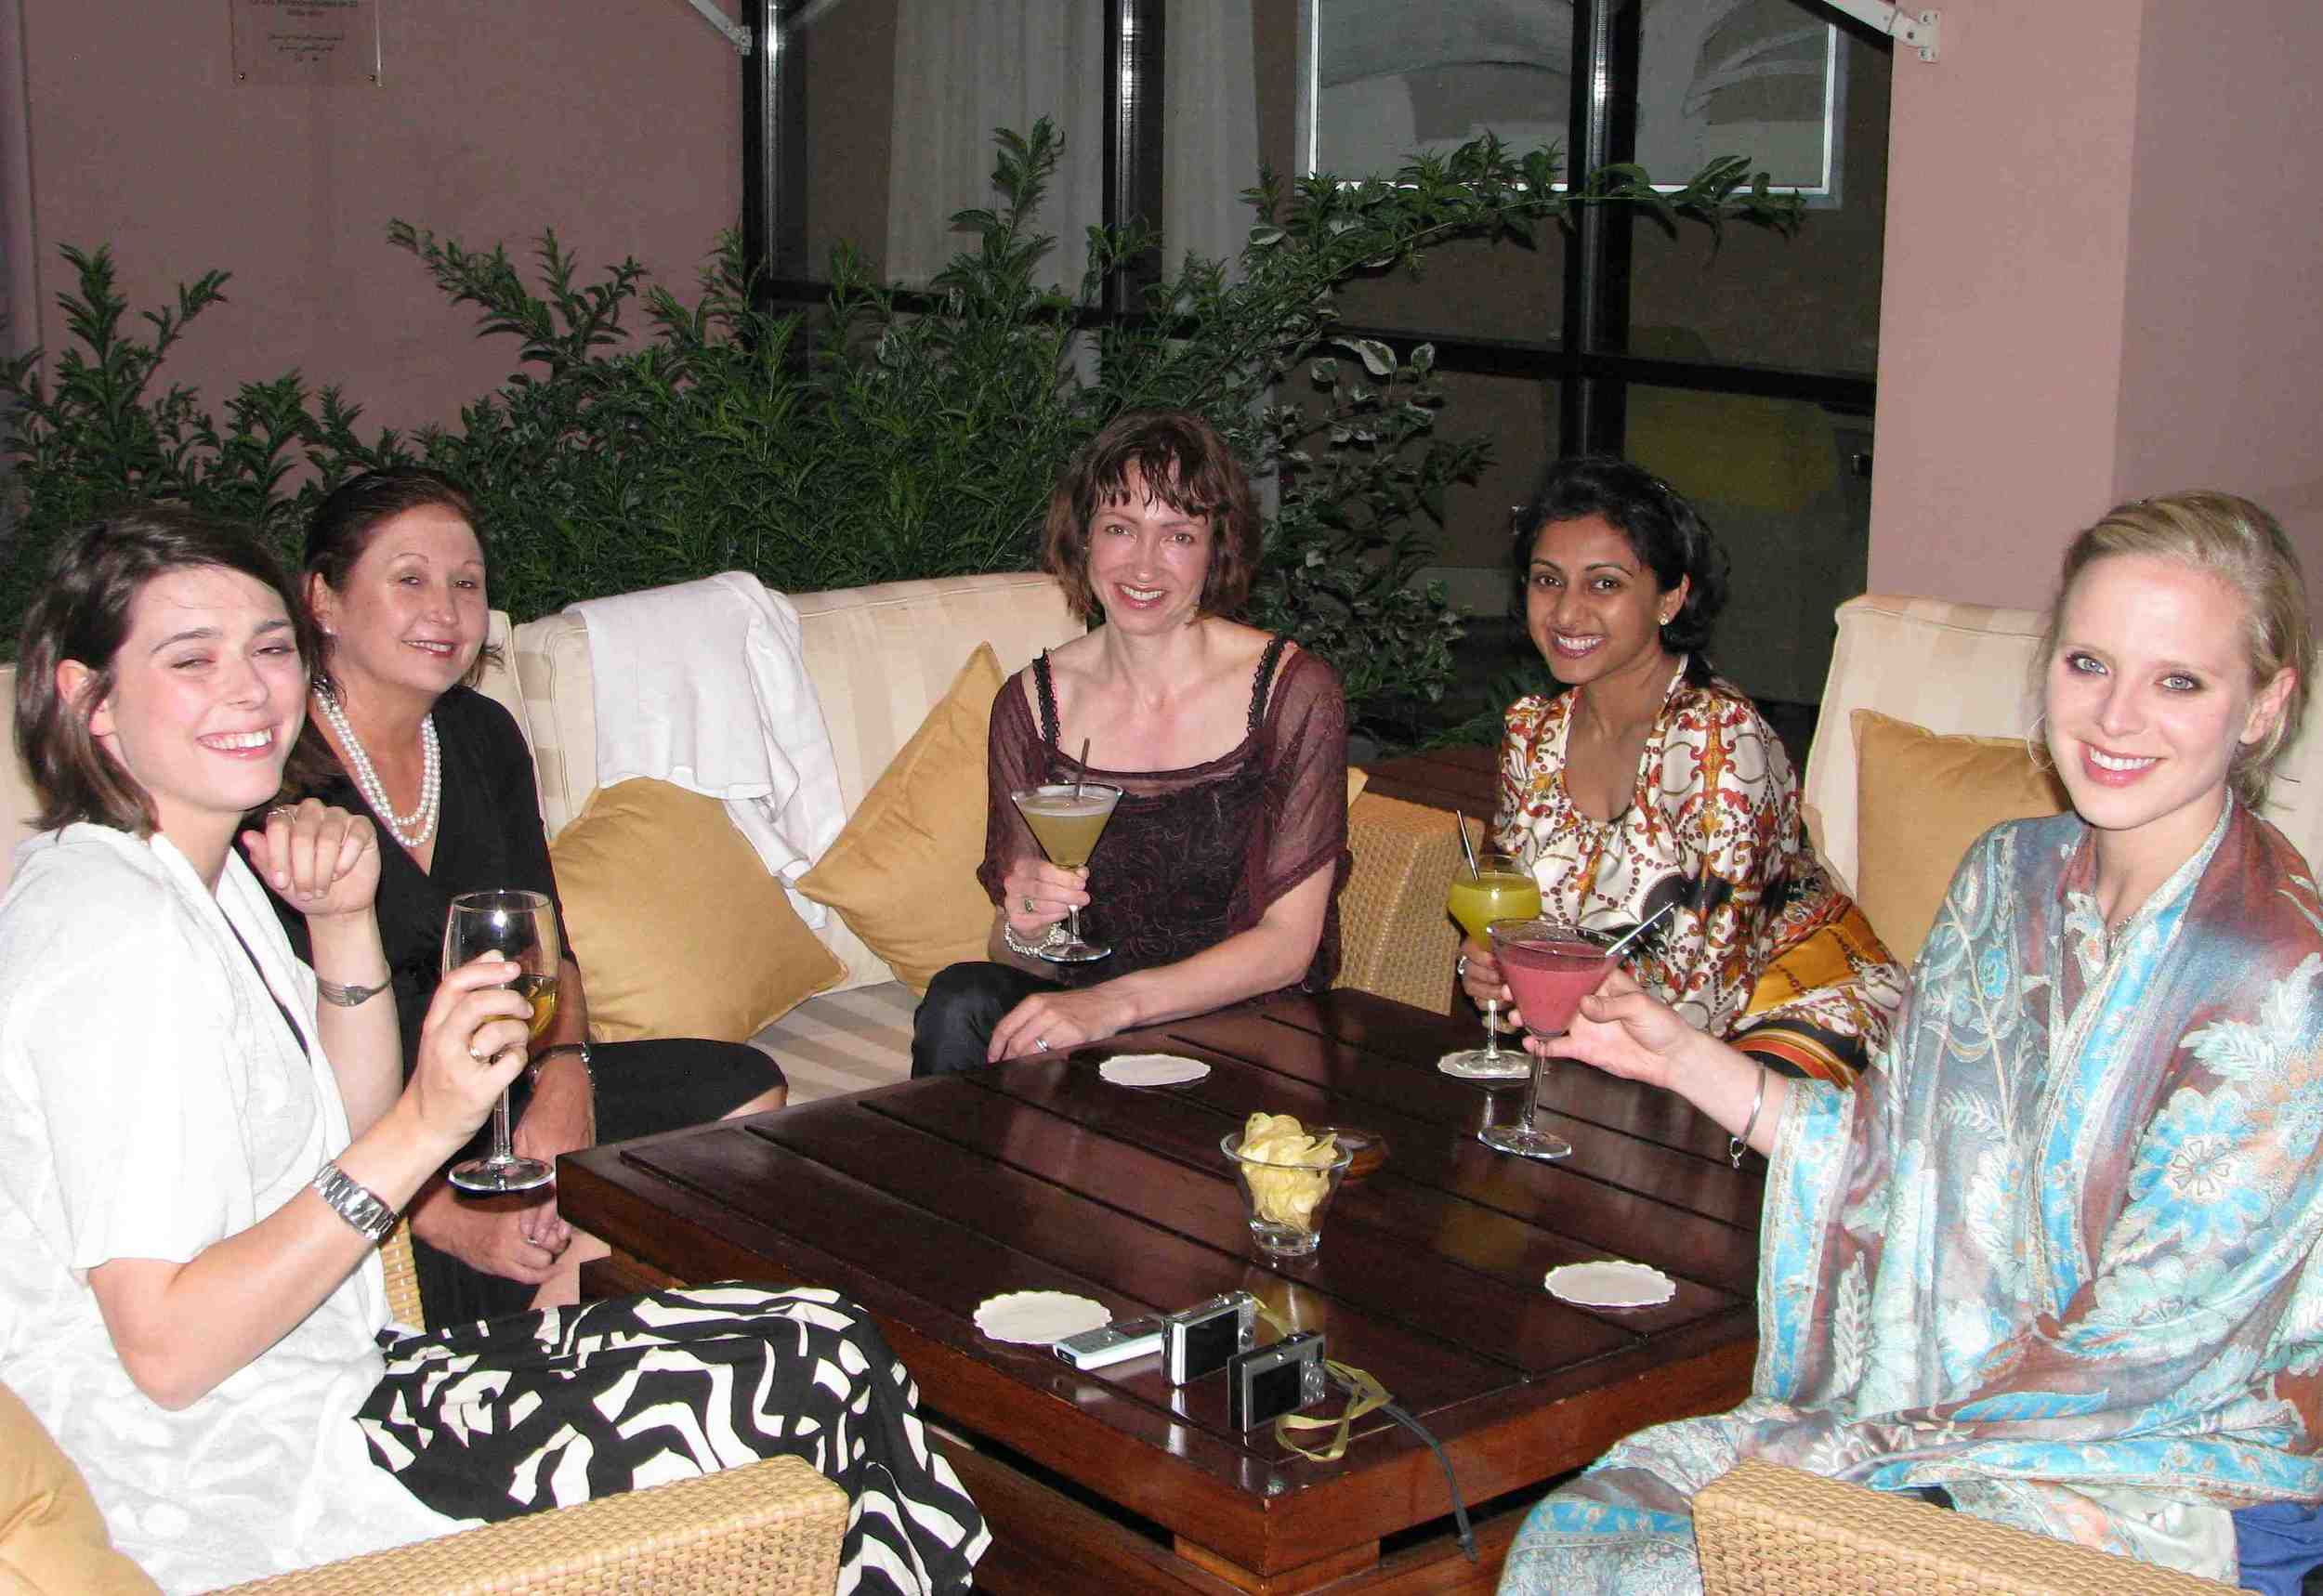 L/R: Olivia Graham, Sue Ryan, Laura Ivill, and far right Lucy Cleland at the Sofitel el gezirah